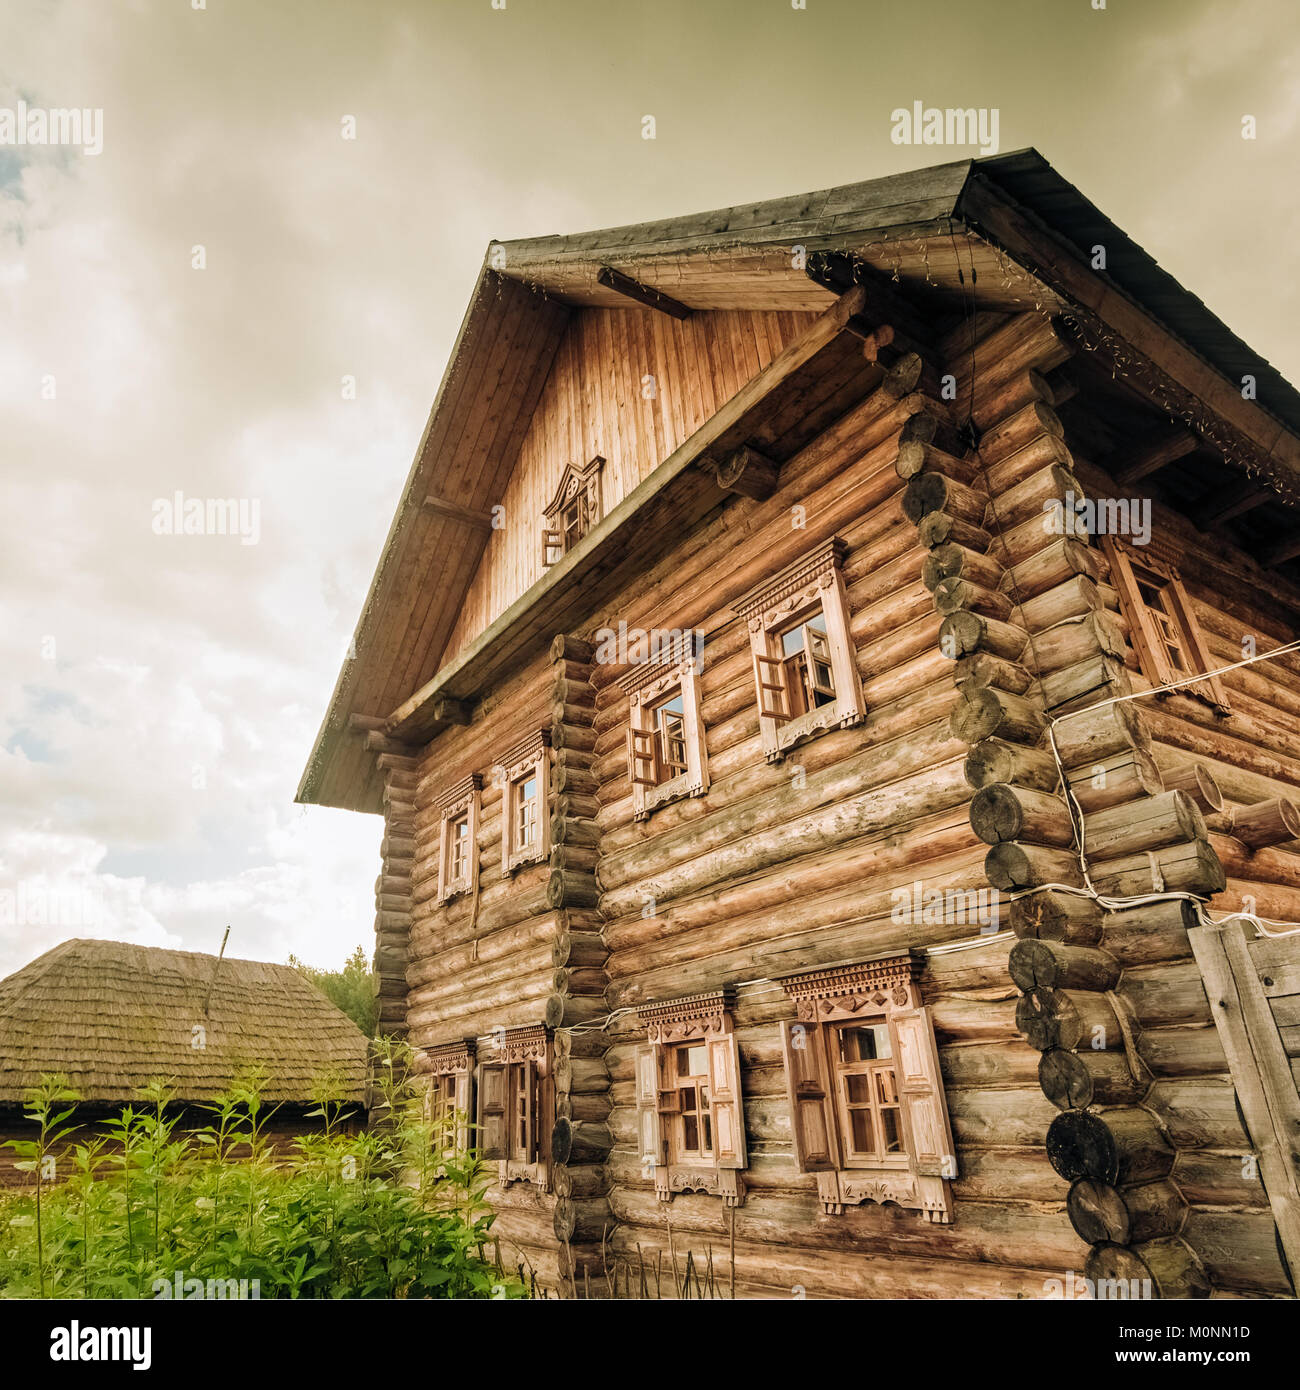 Wooden two-story log house Slavic type - Stock Image